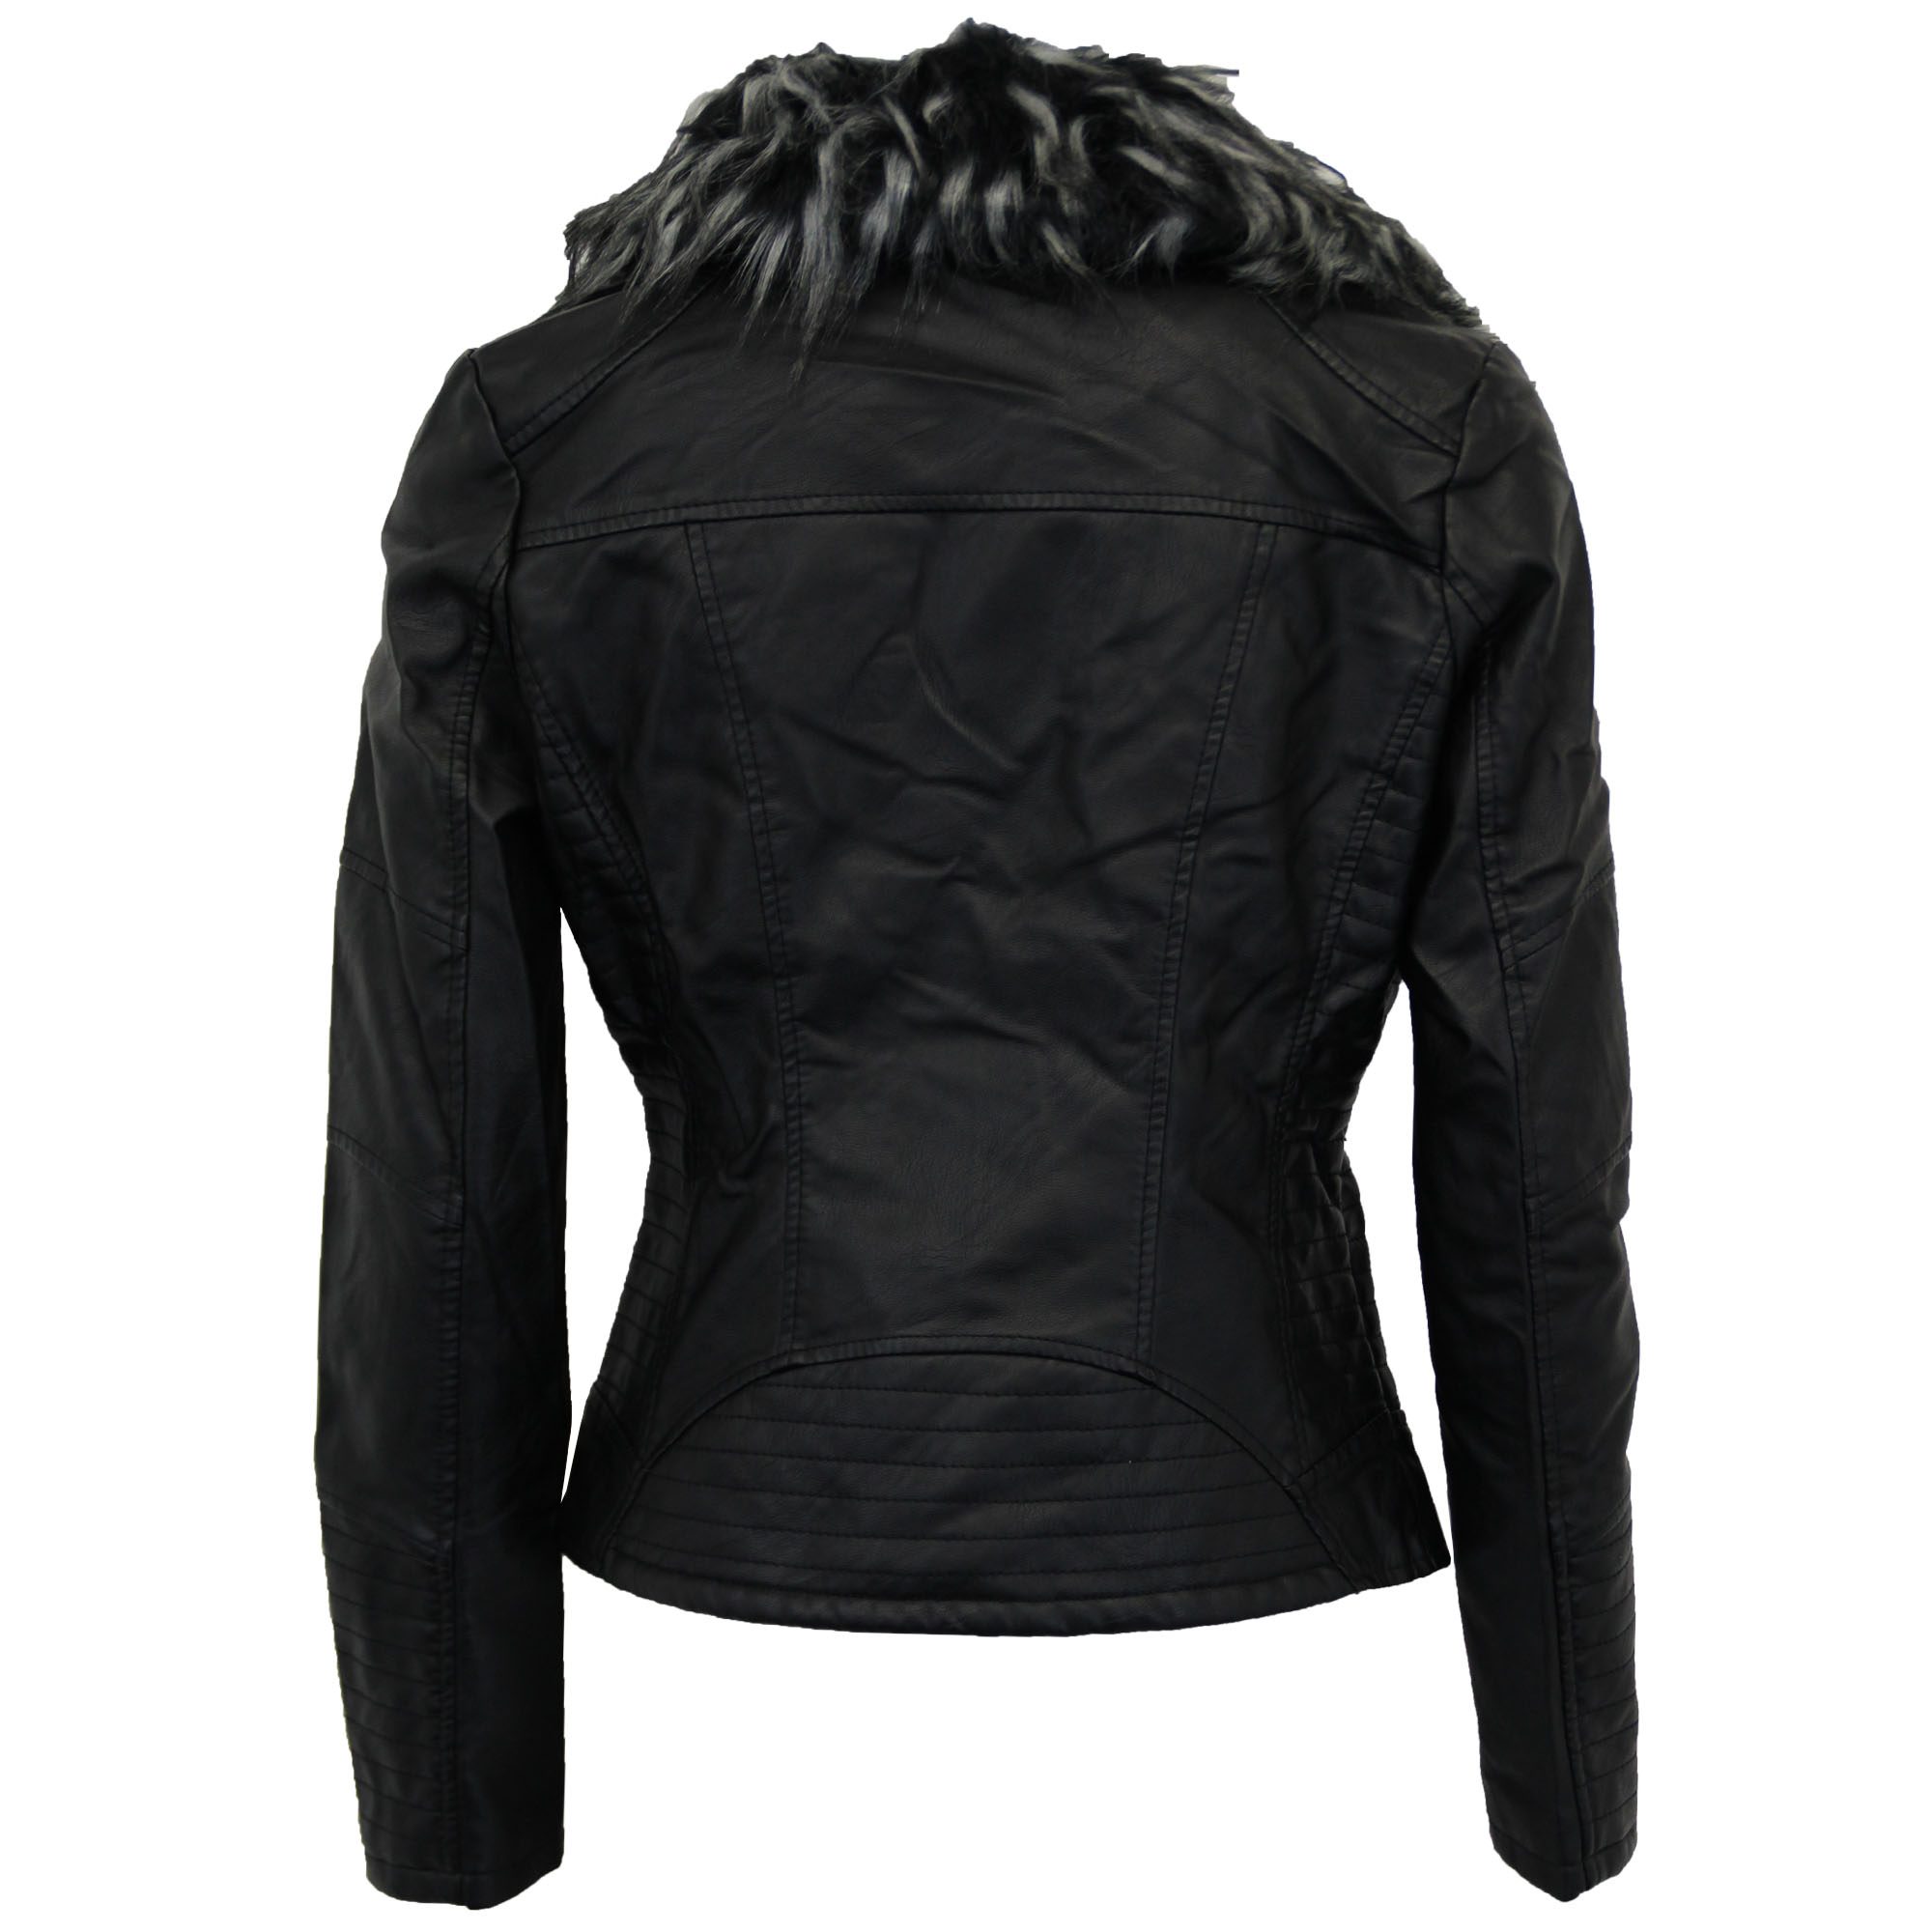 Ladies-Biker-Jacket-Brave-Soul-Womens-Coat-Zip-Fur-Leather-Look-Bomber-Fashion